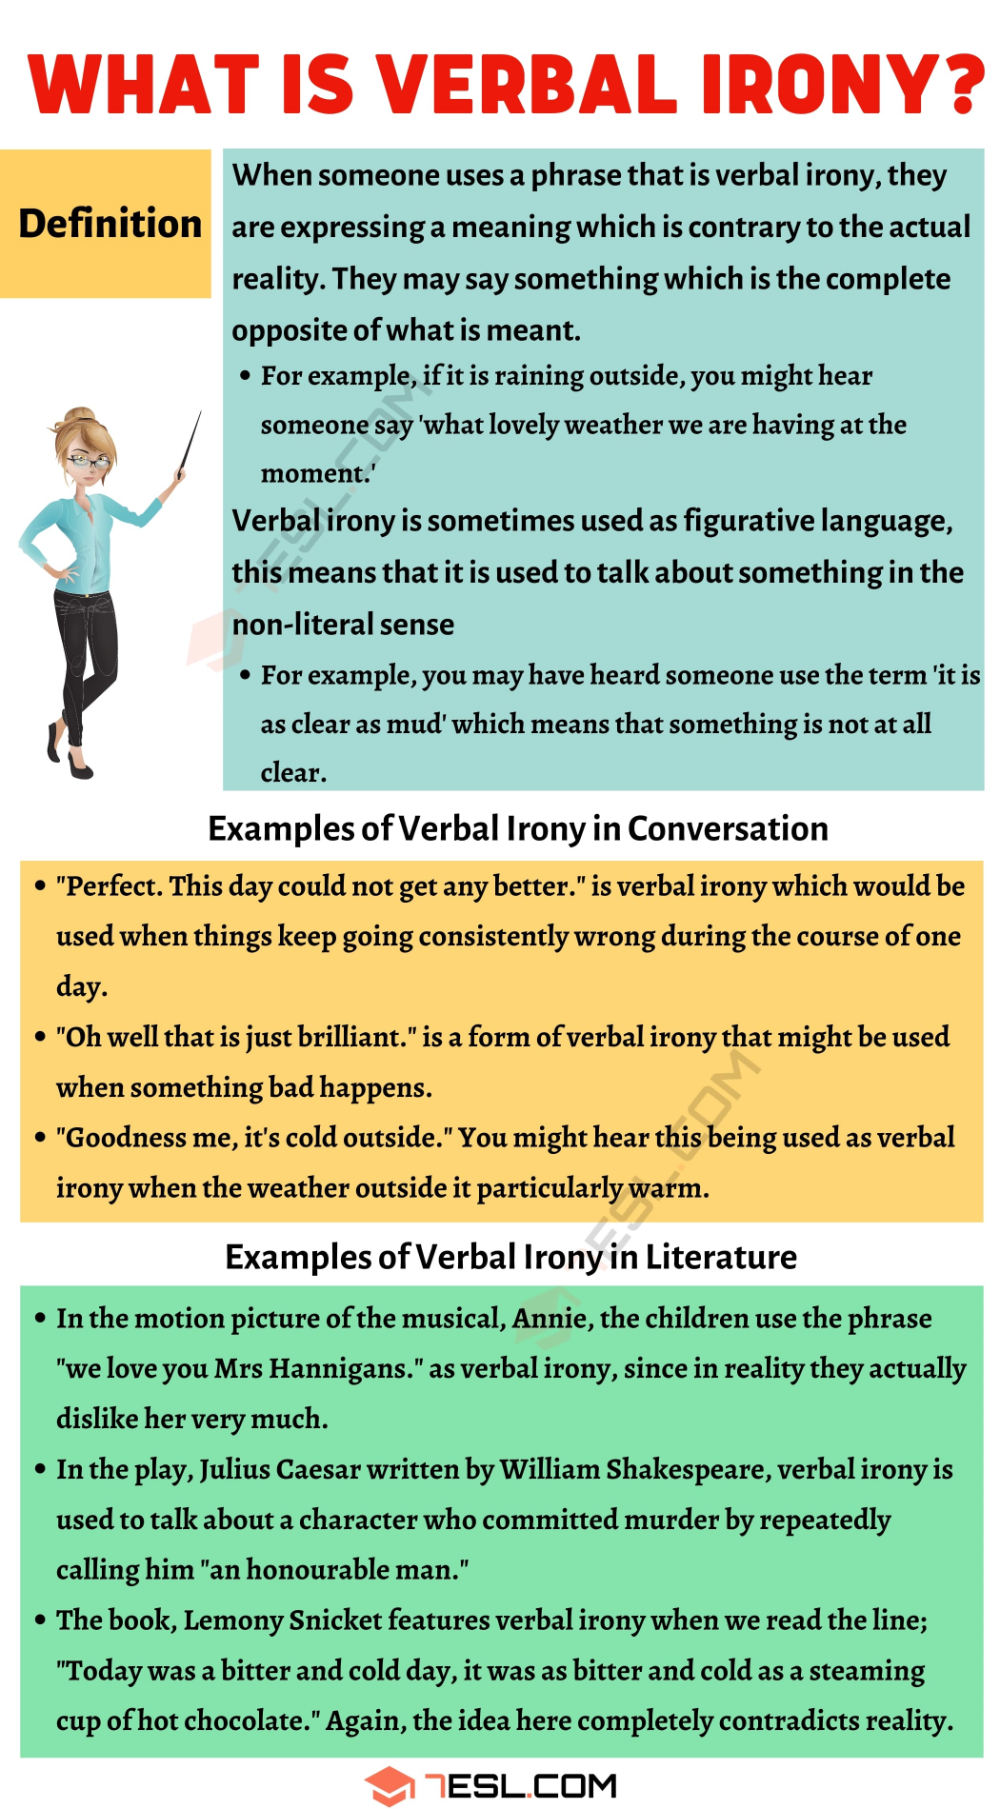 Verbal Irony Definition And Useful Examples In Conversation Literature 7 E S L Essay Writing Skills Writing Words English Writing Skills